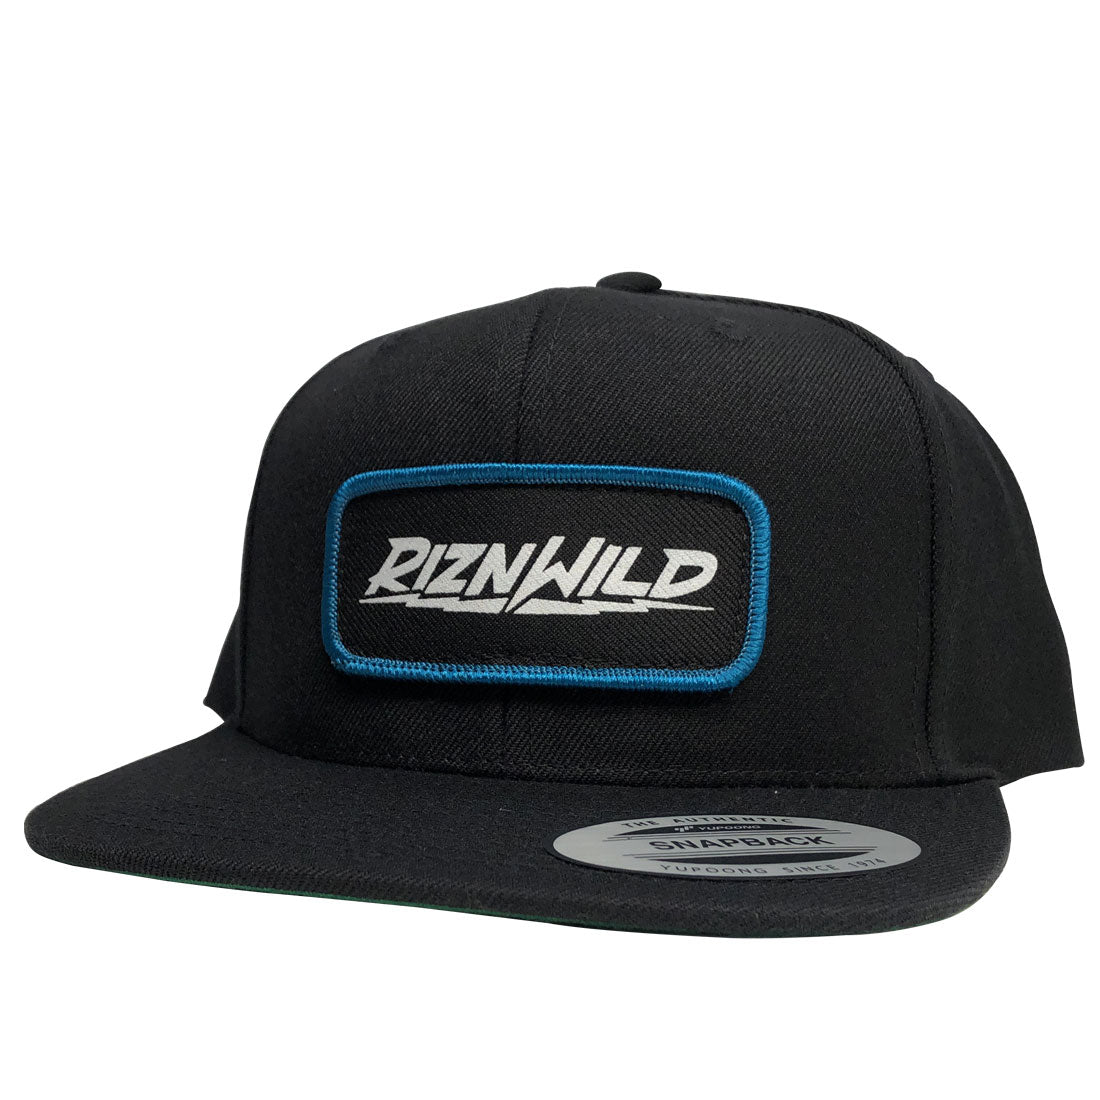 RIZNWILD | Flex flex-fit hat with blue piping patch